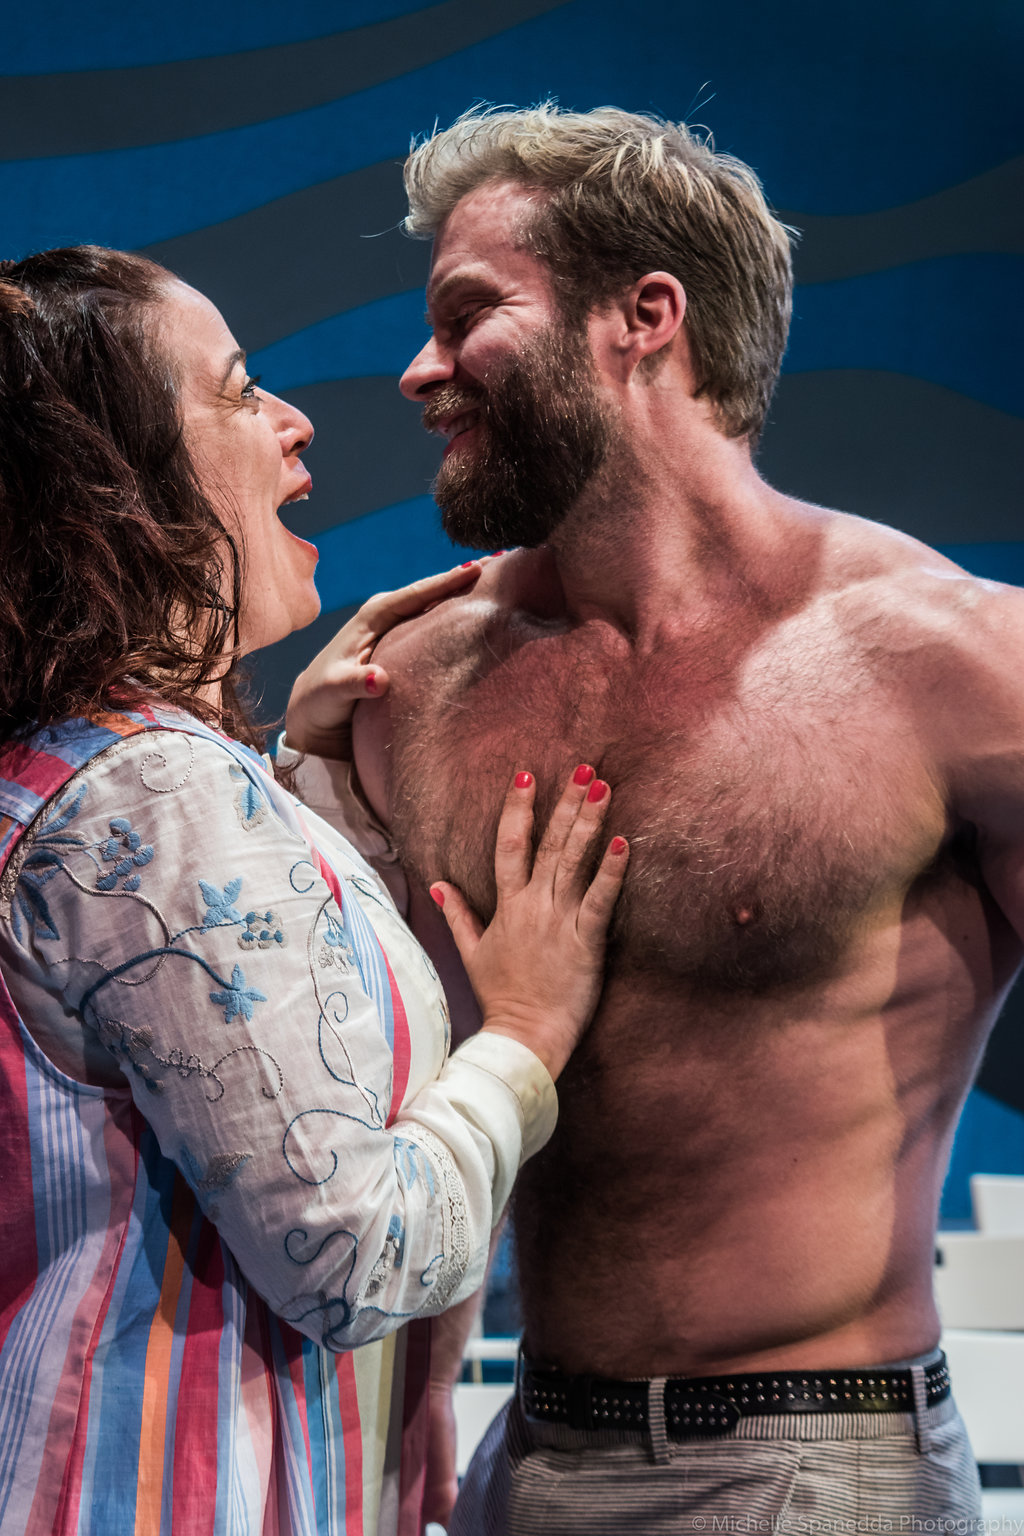 """Craig Ramsay and Sheri Sanders in ACT of Connecticut's """"Mamma Mia"""", Photo Credit:Michelle Spanedda Photography"""